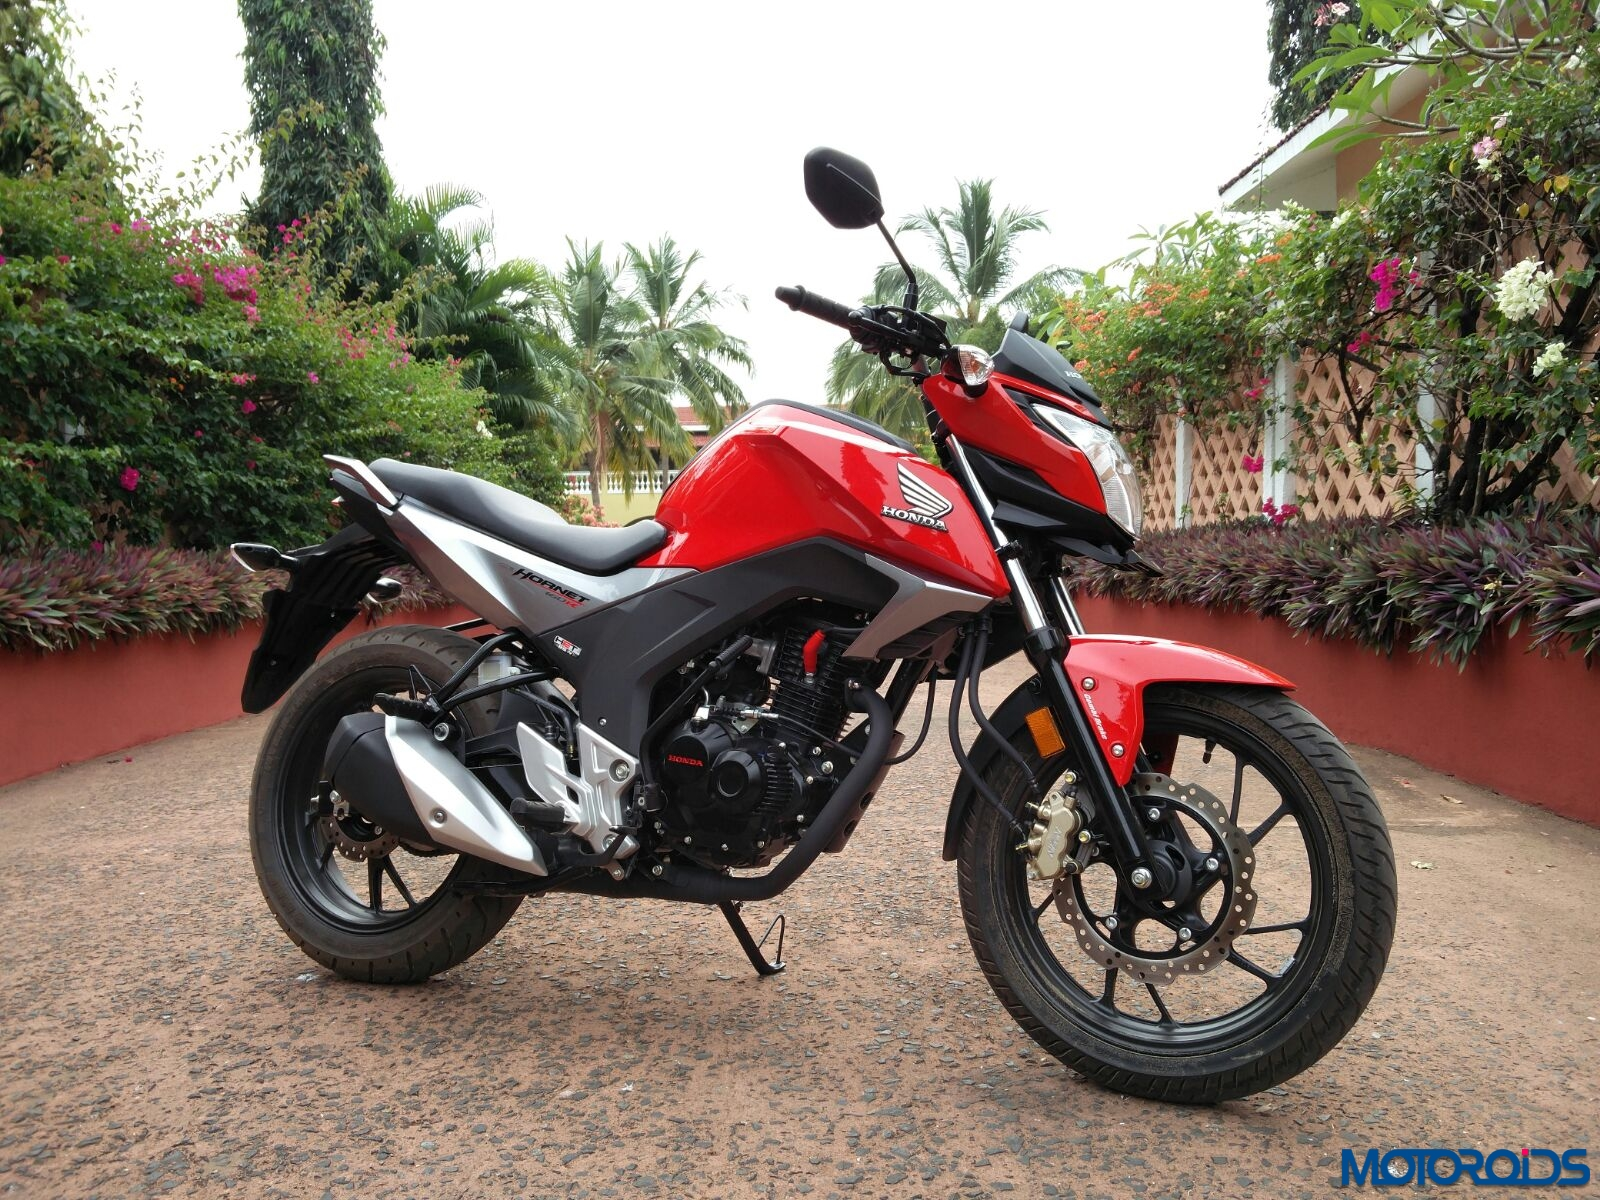 Honda CB Hornet 160R first ride review, images, specs and details : Dressy Diligence | Motoroids